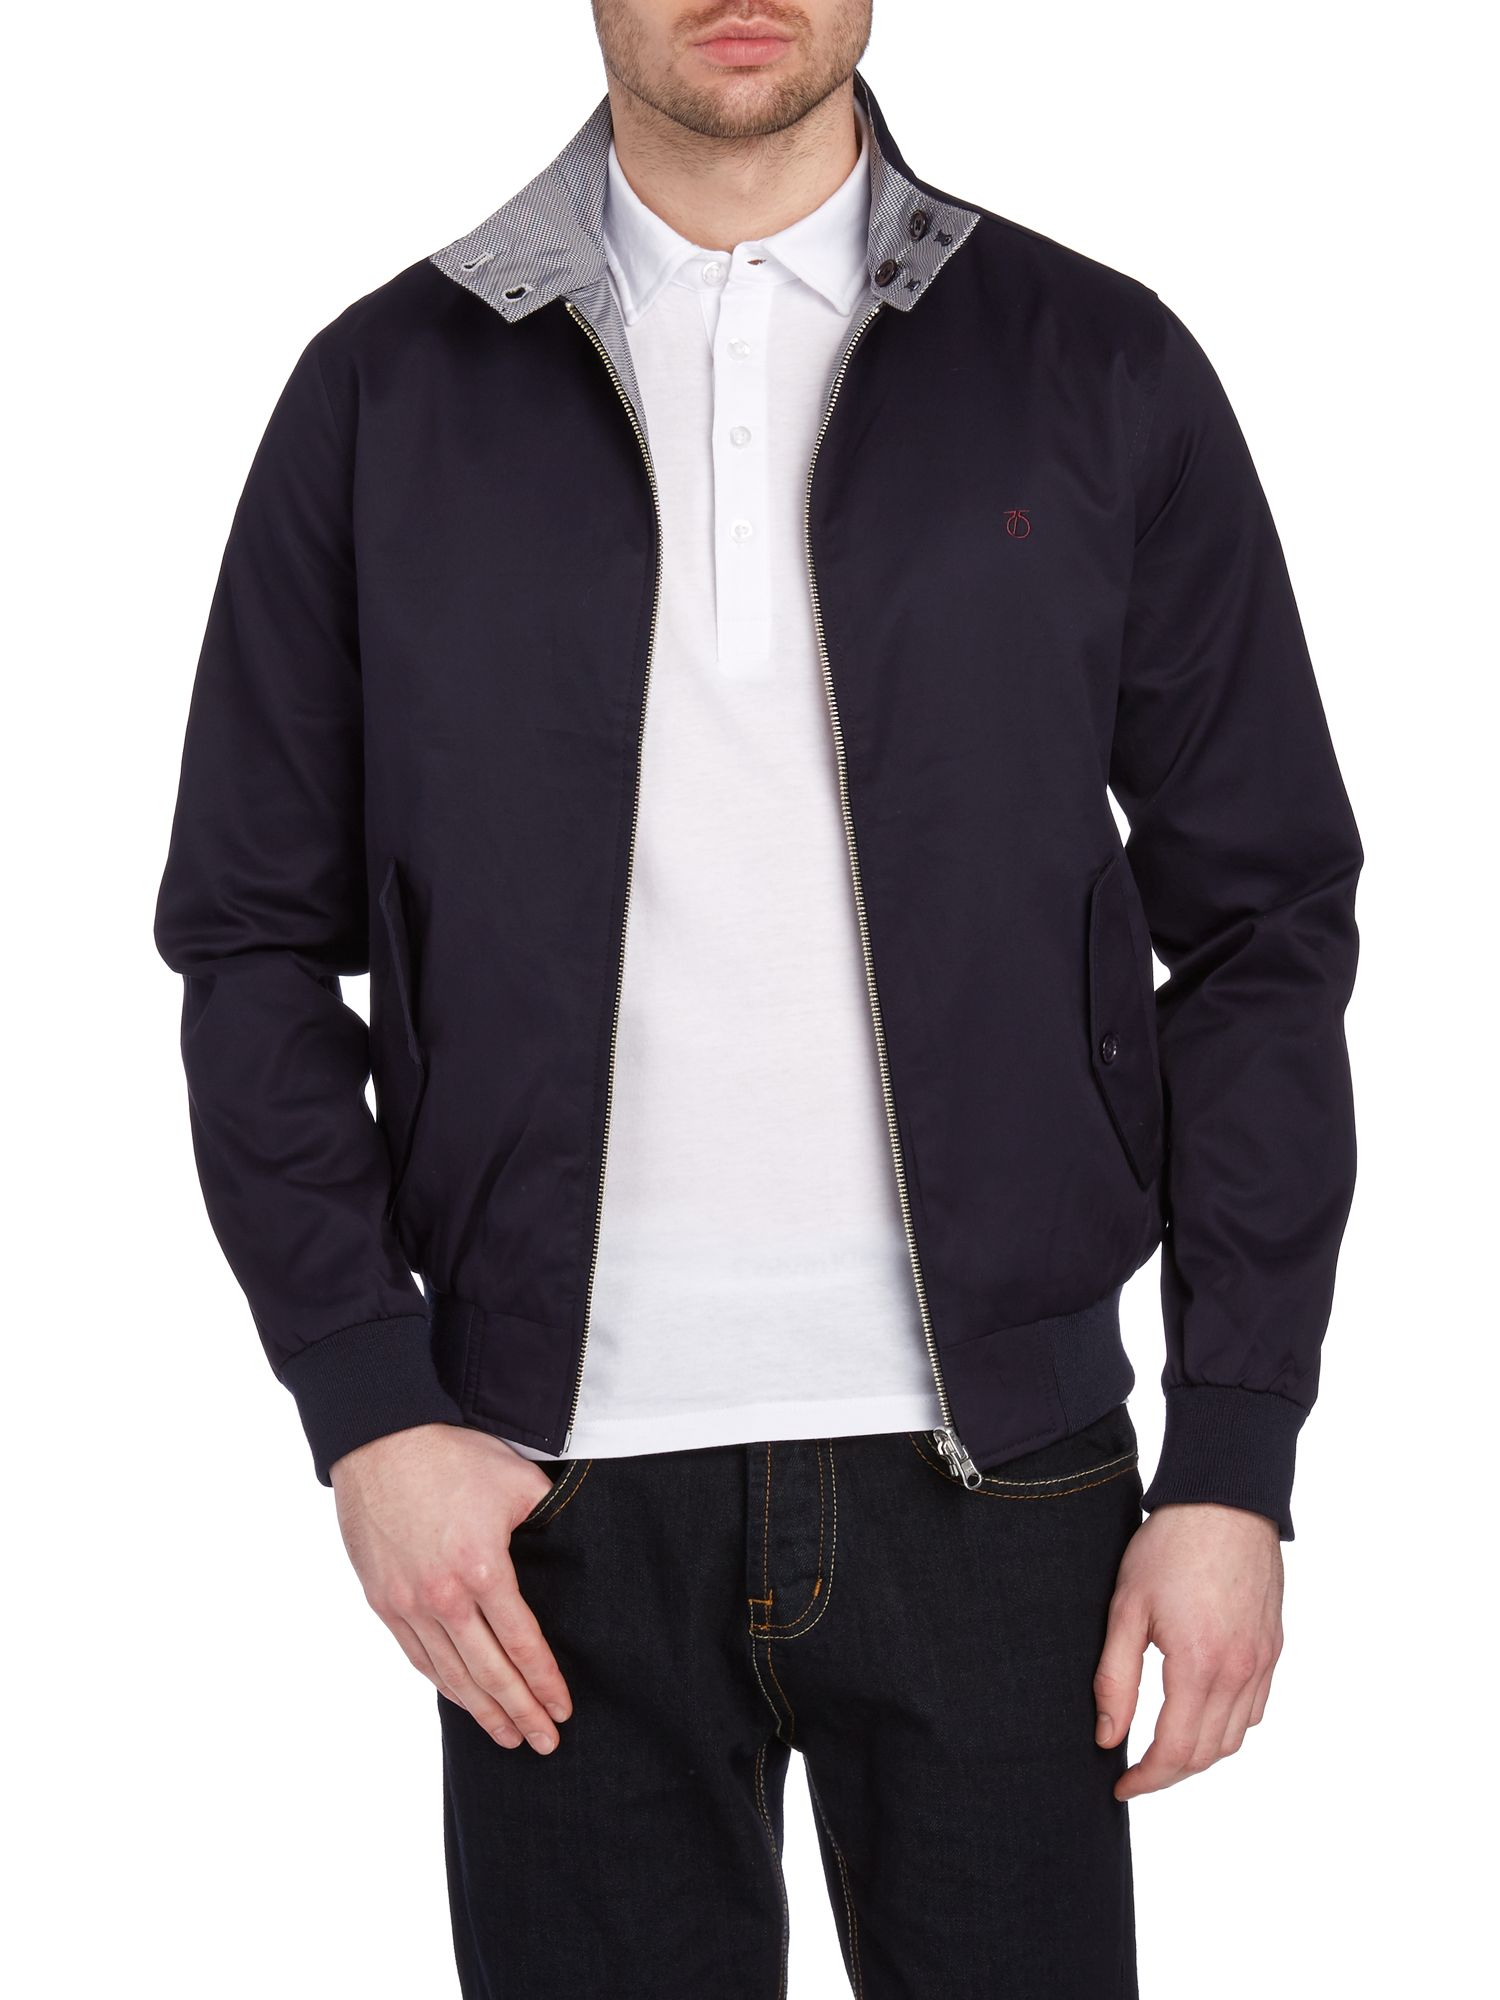 Spring harrington jacket